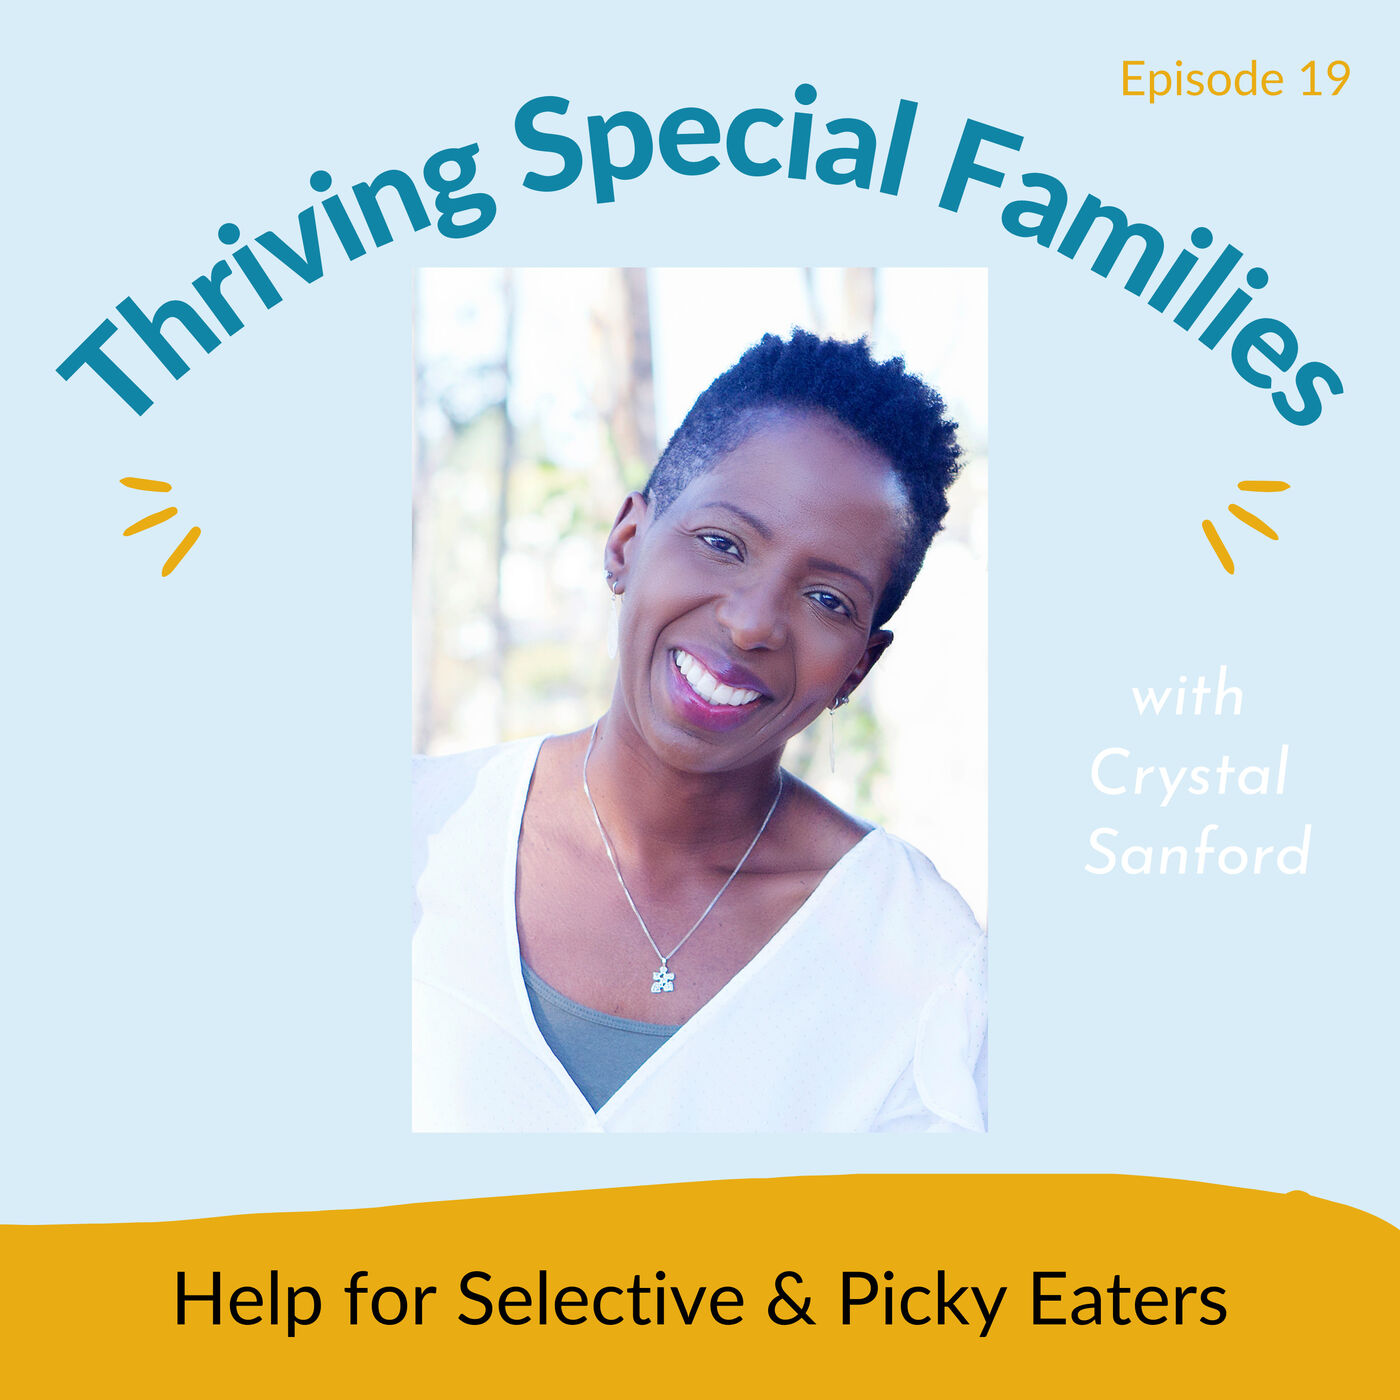 Help for Selective & Picky Eaters